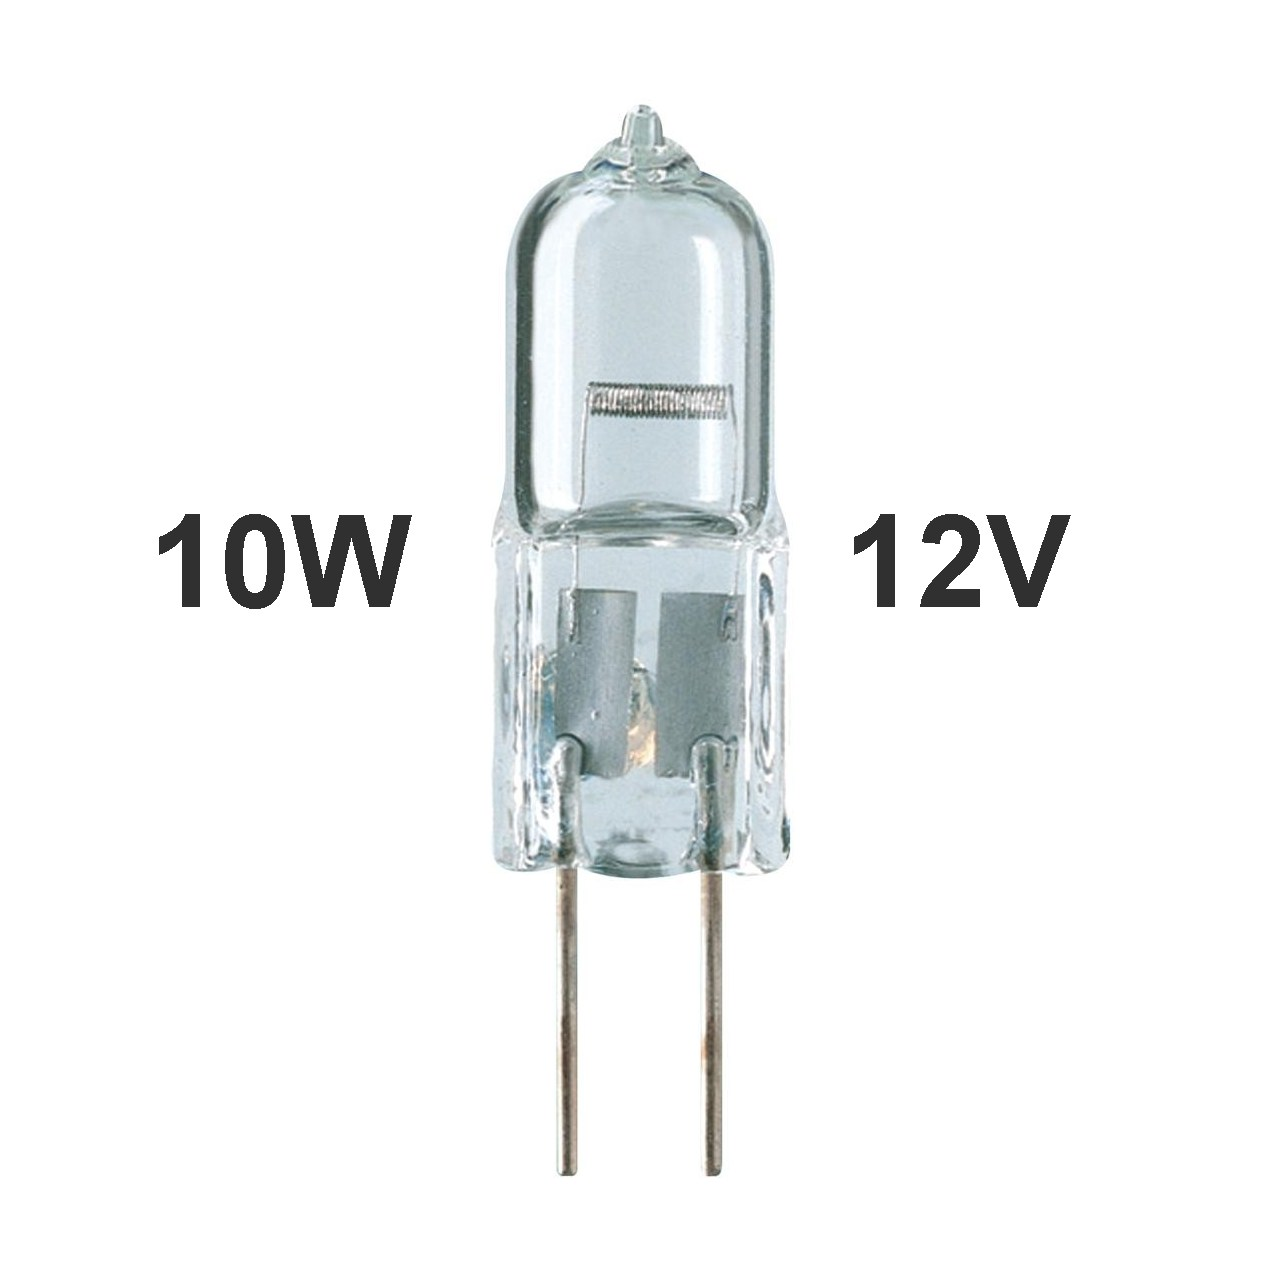 12v 10w 10w Halogen G4 Bi Pin Bulb 12v Low Voltage